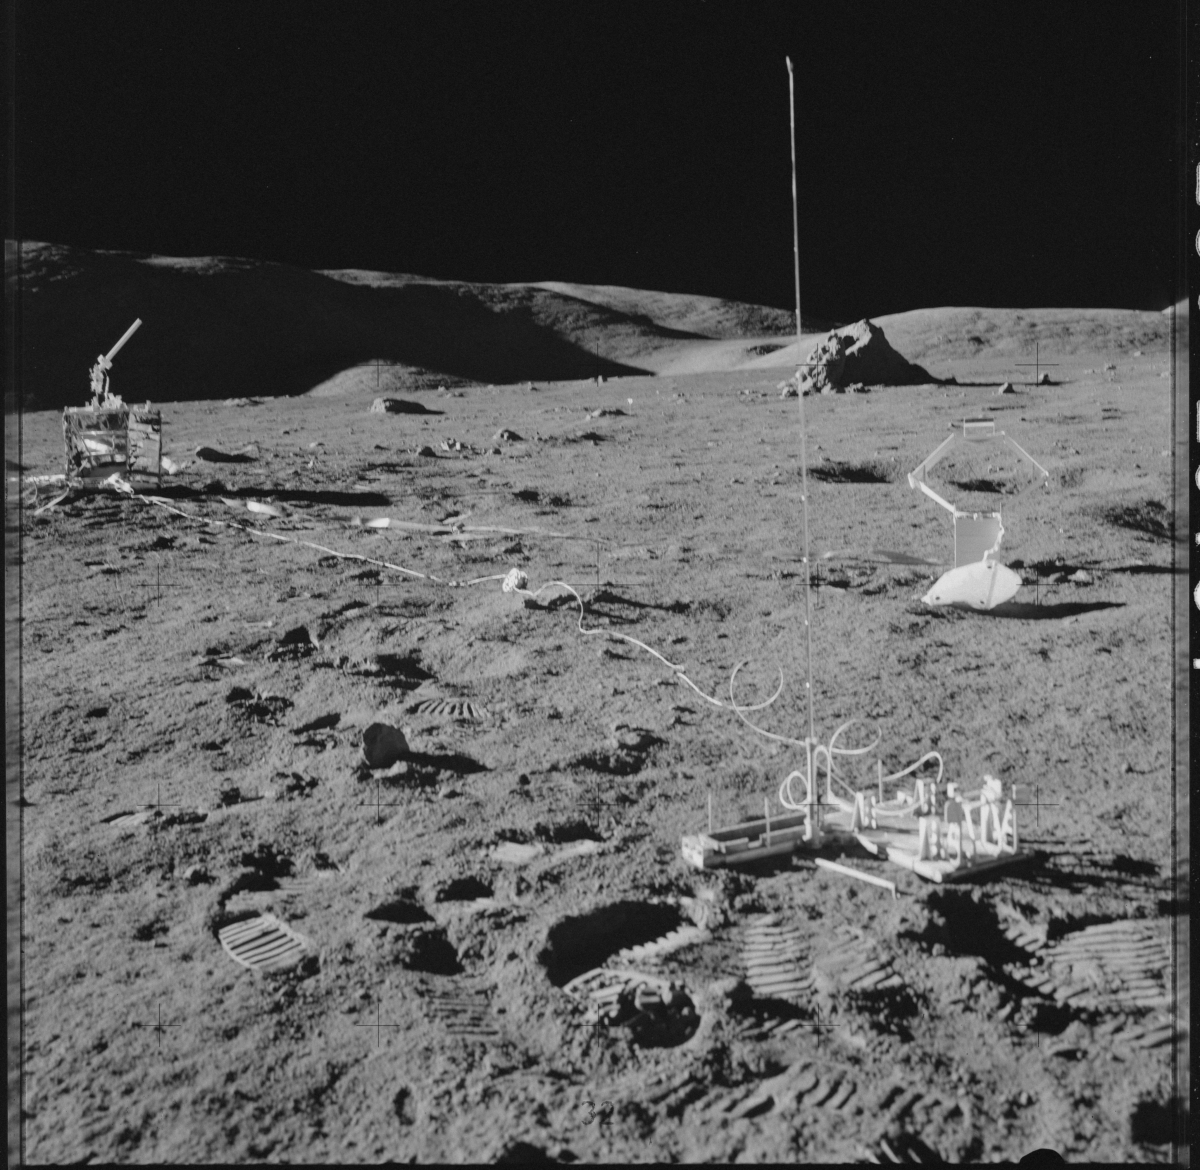 nasa archive photos of moon - photo #16